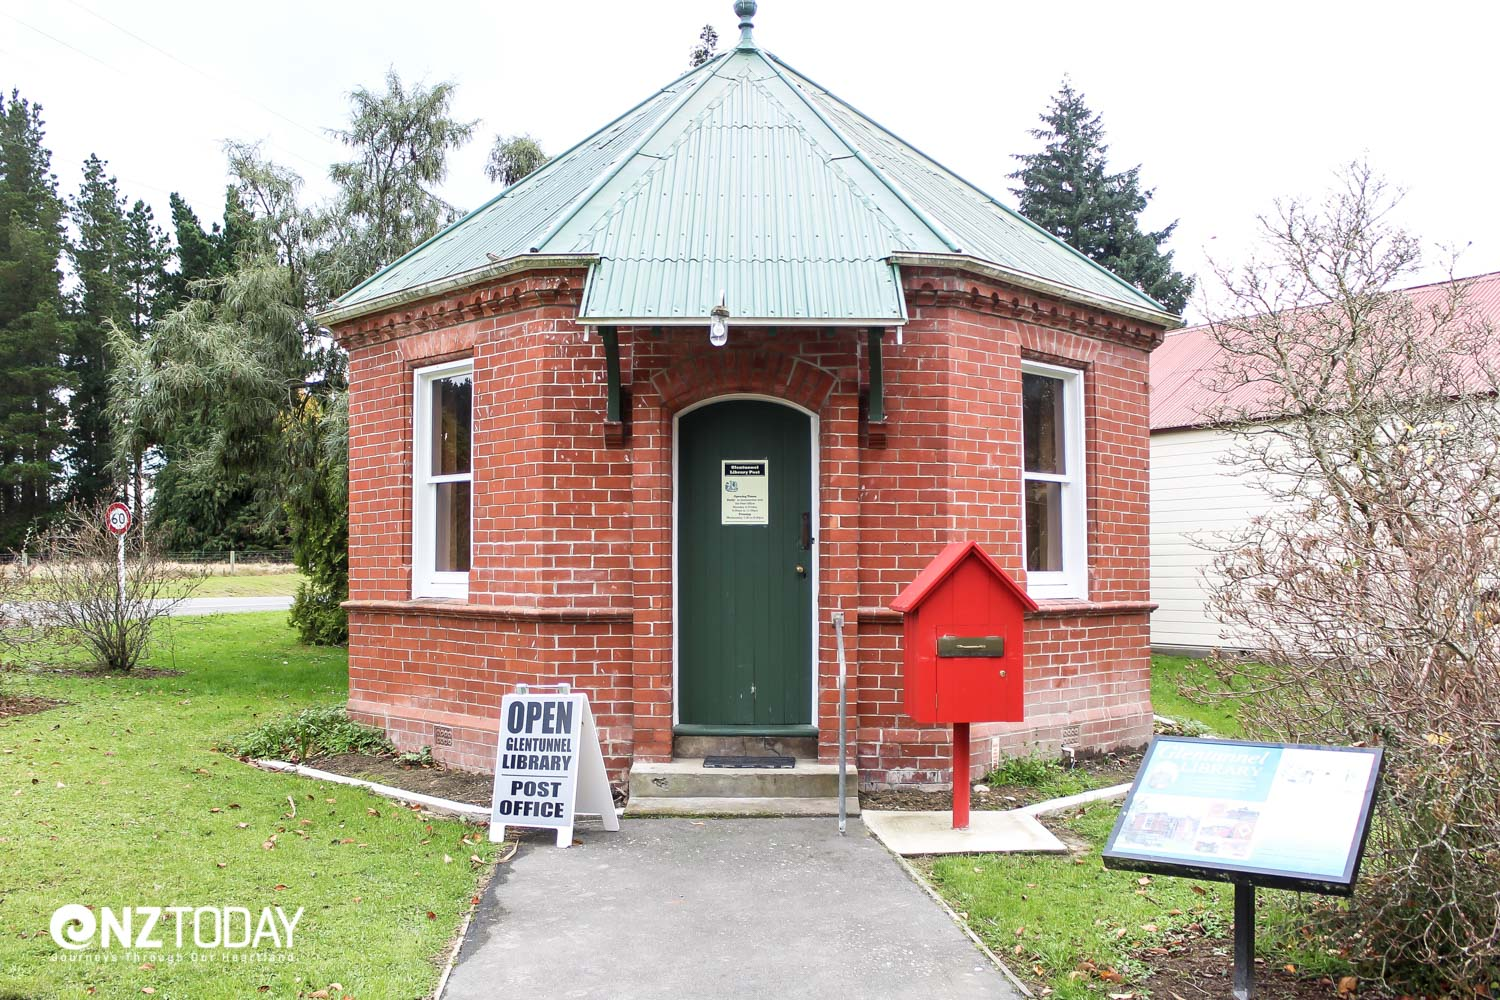 The Glentunnel library – believed to be the only octagonal brick library in New Zealand